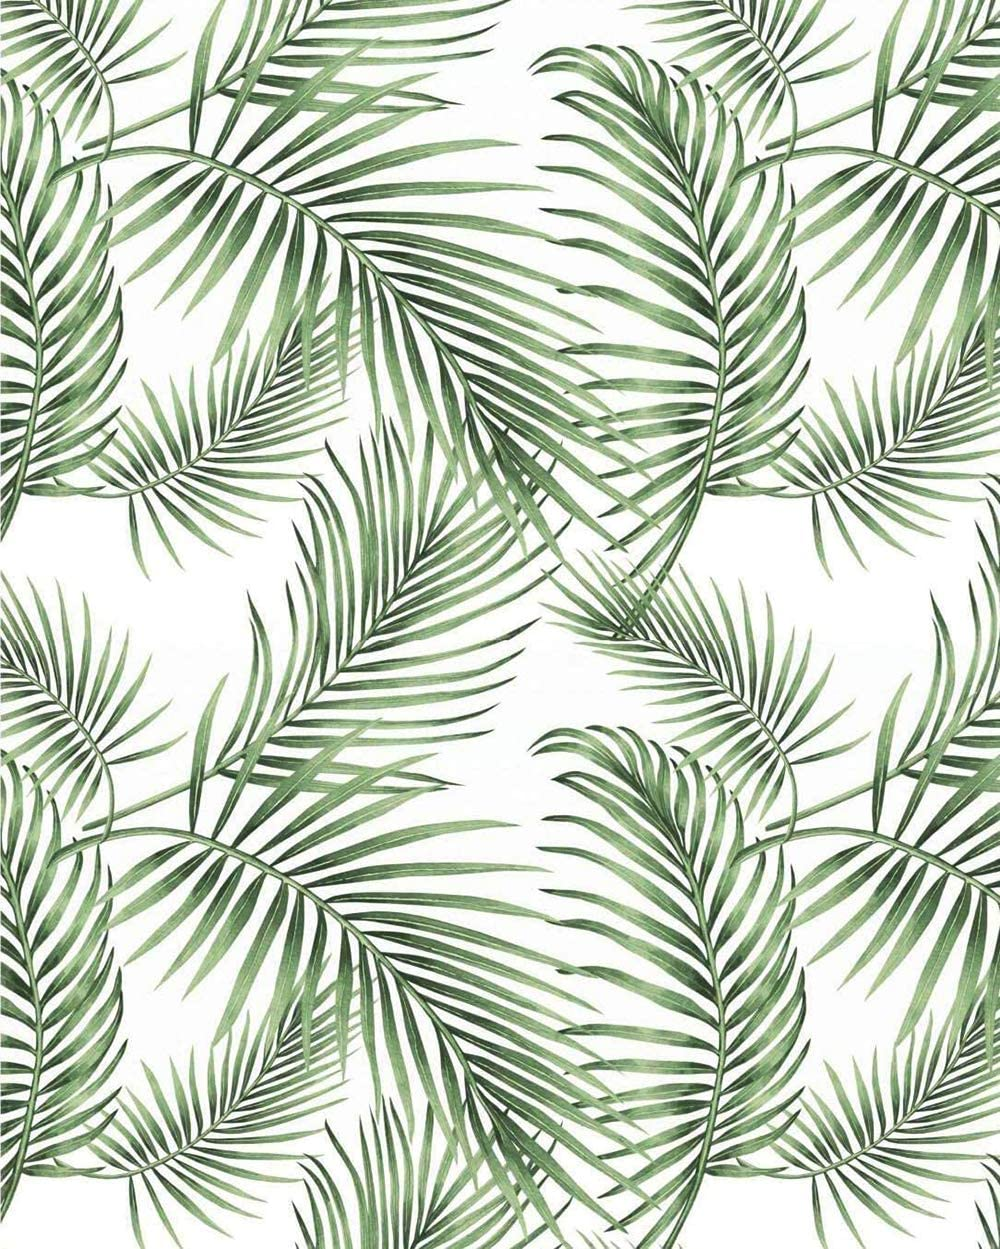 Tropical Palm Wallpaper Rainforest Leaves Wall Paper Jungle Wallpaper Self Adhesive Wallpaper Peel And Stick Wallpaper Green Wallpaper Removable Wallpaper Vinyl Jungle Wallpaper 17 7 78 7 Amazon Com Find over 100+ of the best free tropical leaf images. tropical palm wallpaper rainforest leaves wall paper jungle wallpaper self adhesive wallpaper peel and stick wallpaper green wallpaper removable